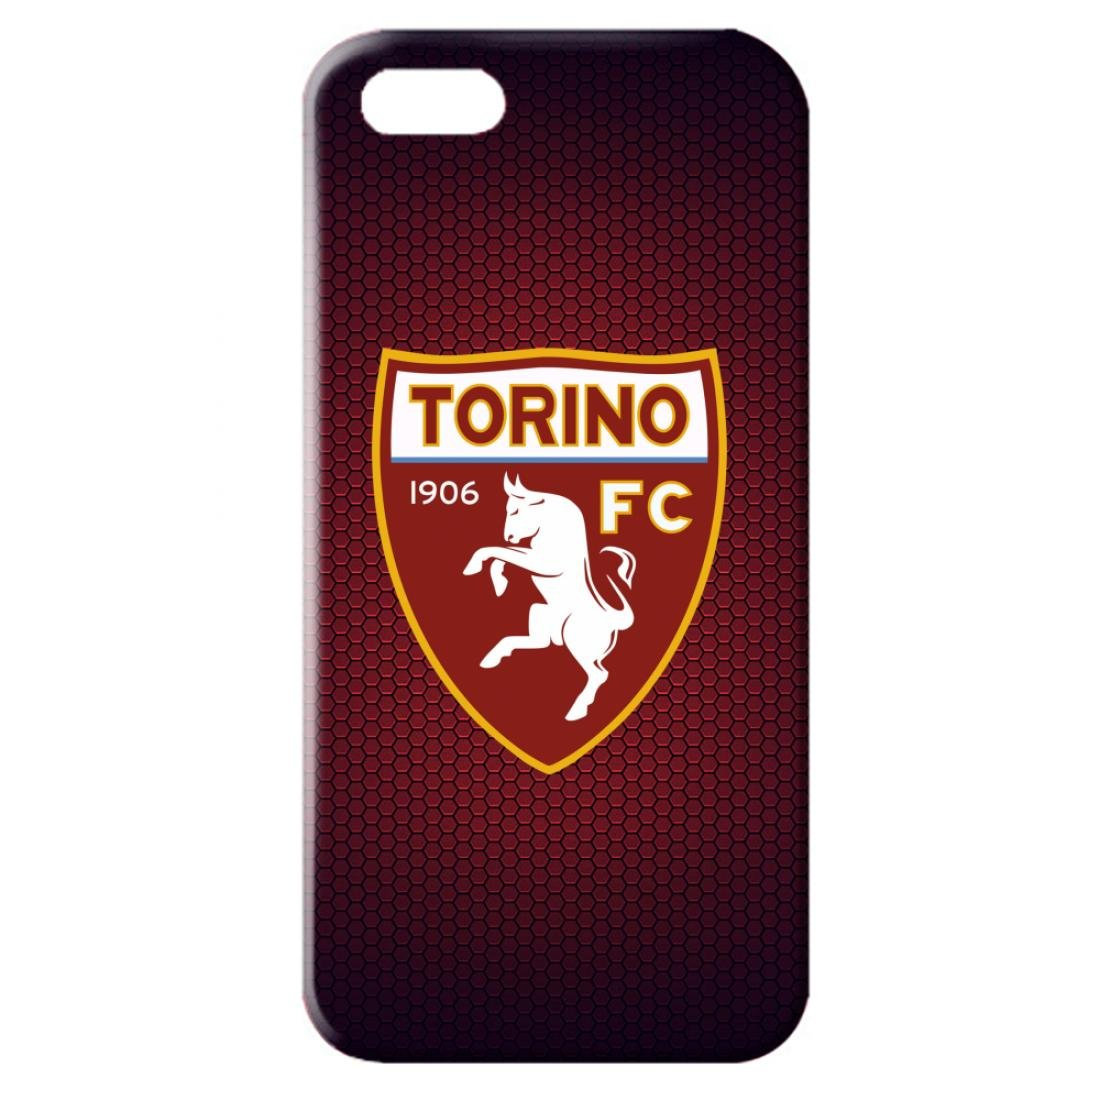 3D Classical Case Cover Torino FC Logo,Iphone 5 Phone Case Protective Cover For Iphone 5